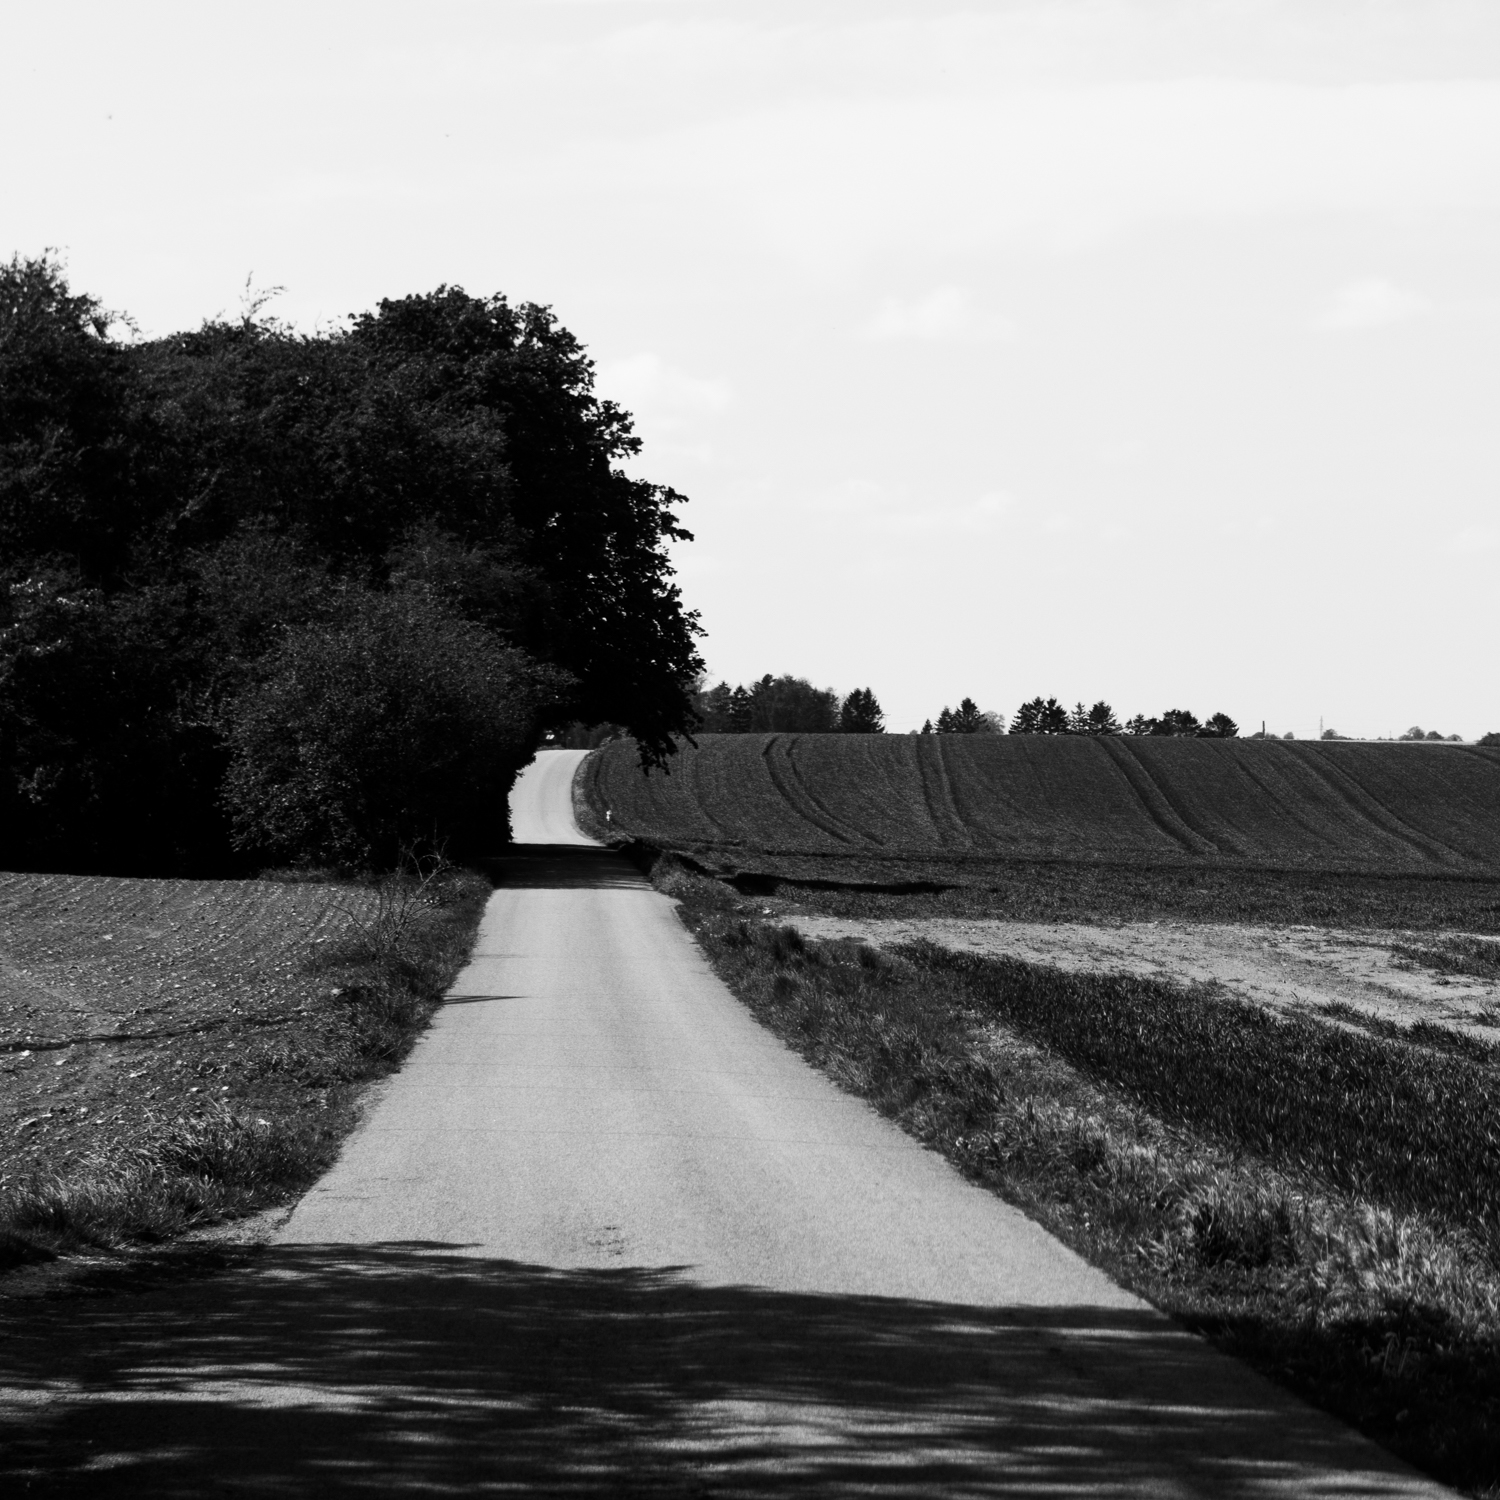 Day 150 - May 30: The Road Less Traveled